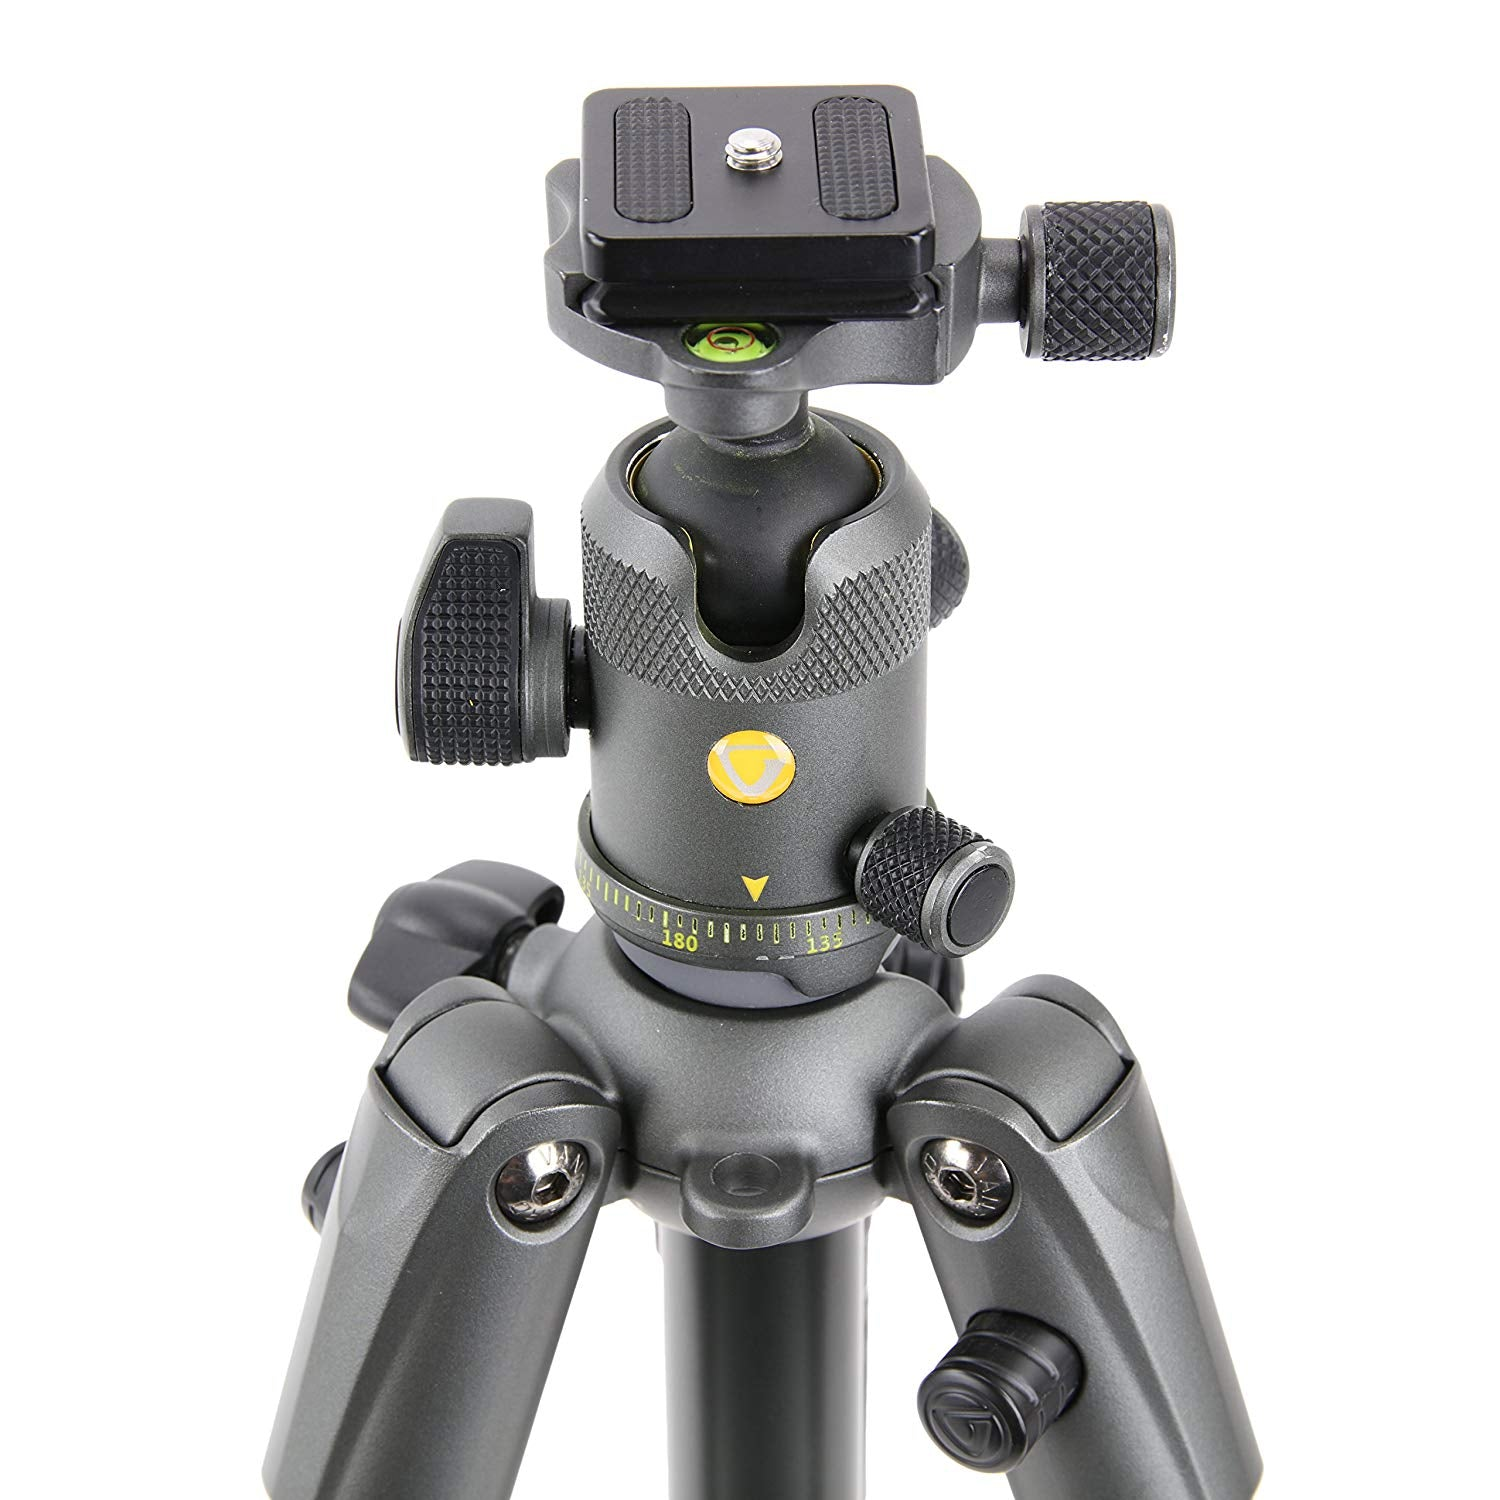 Vanguard VEO 2 265CB Carbon Fiber Tripod with Ball Head